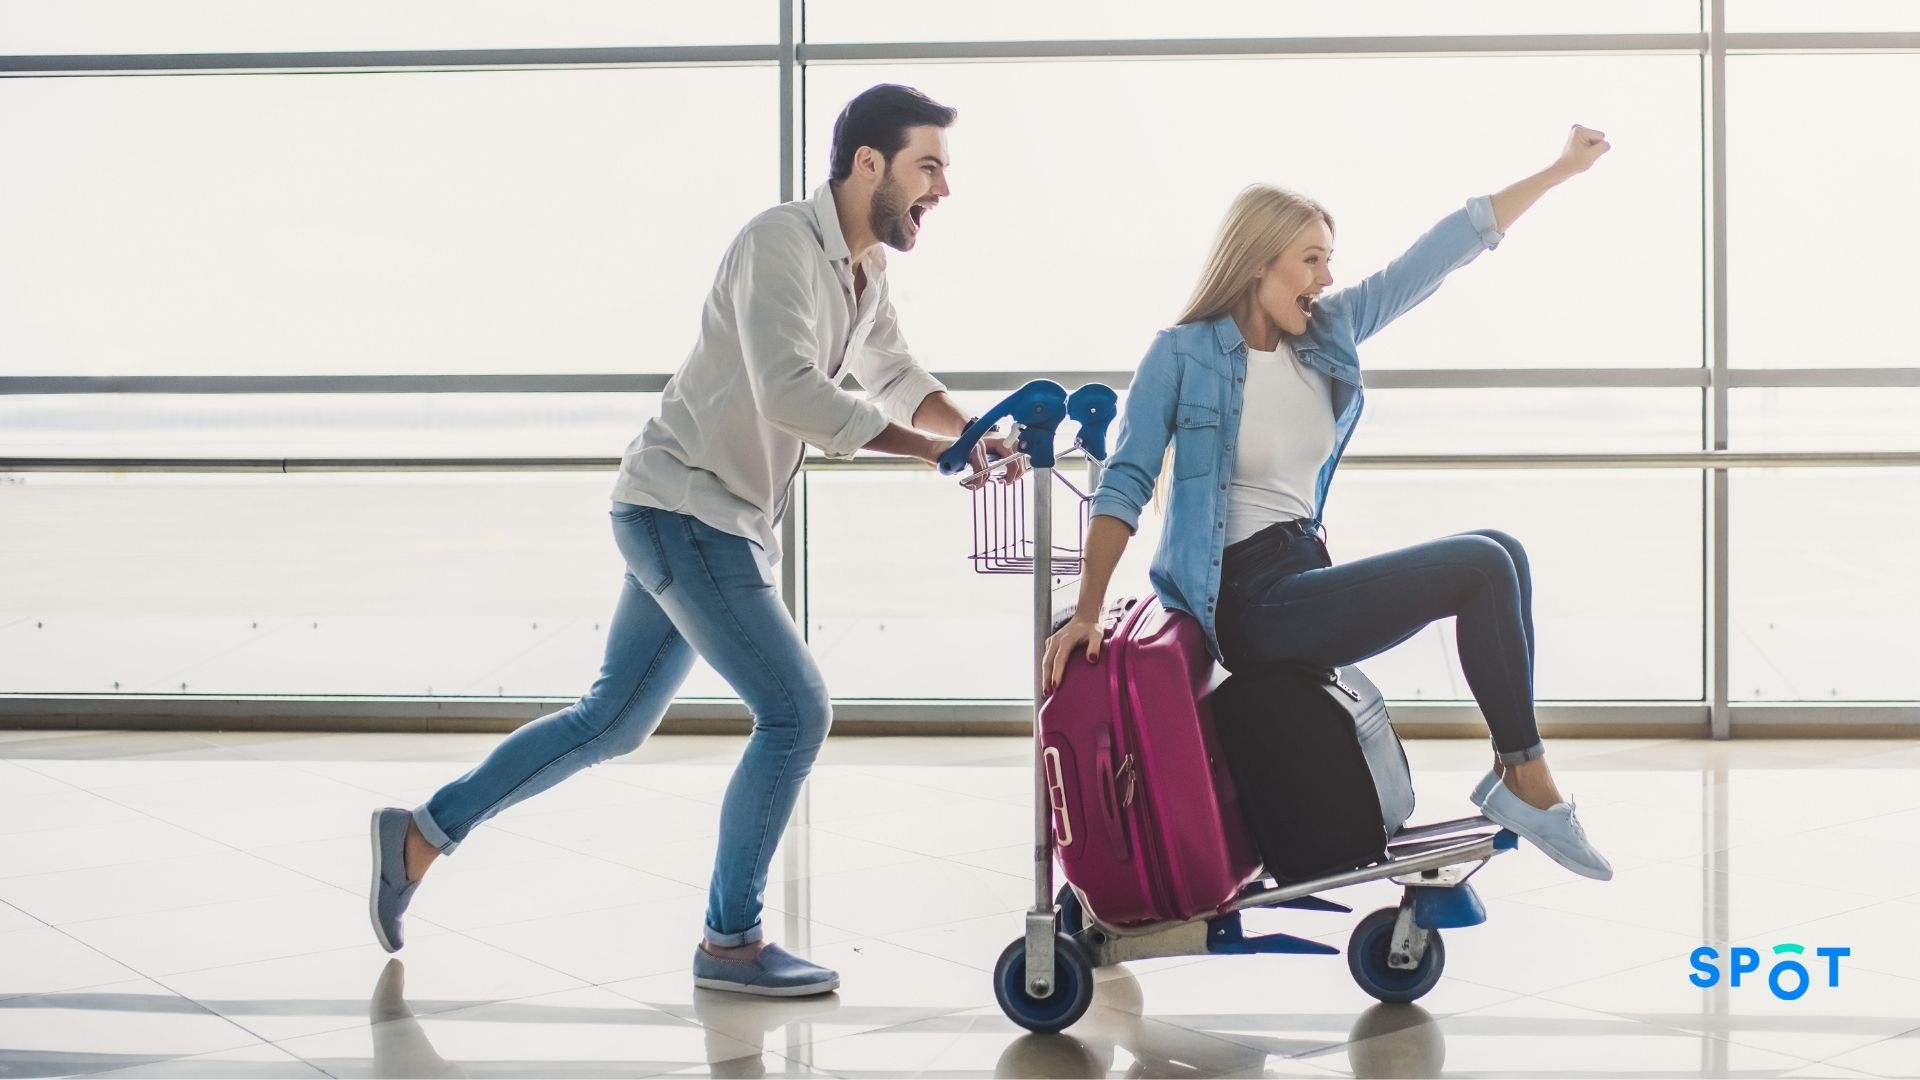 Two air travelers in the airport, airport parking, customer centric